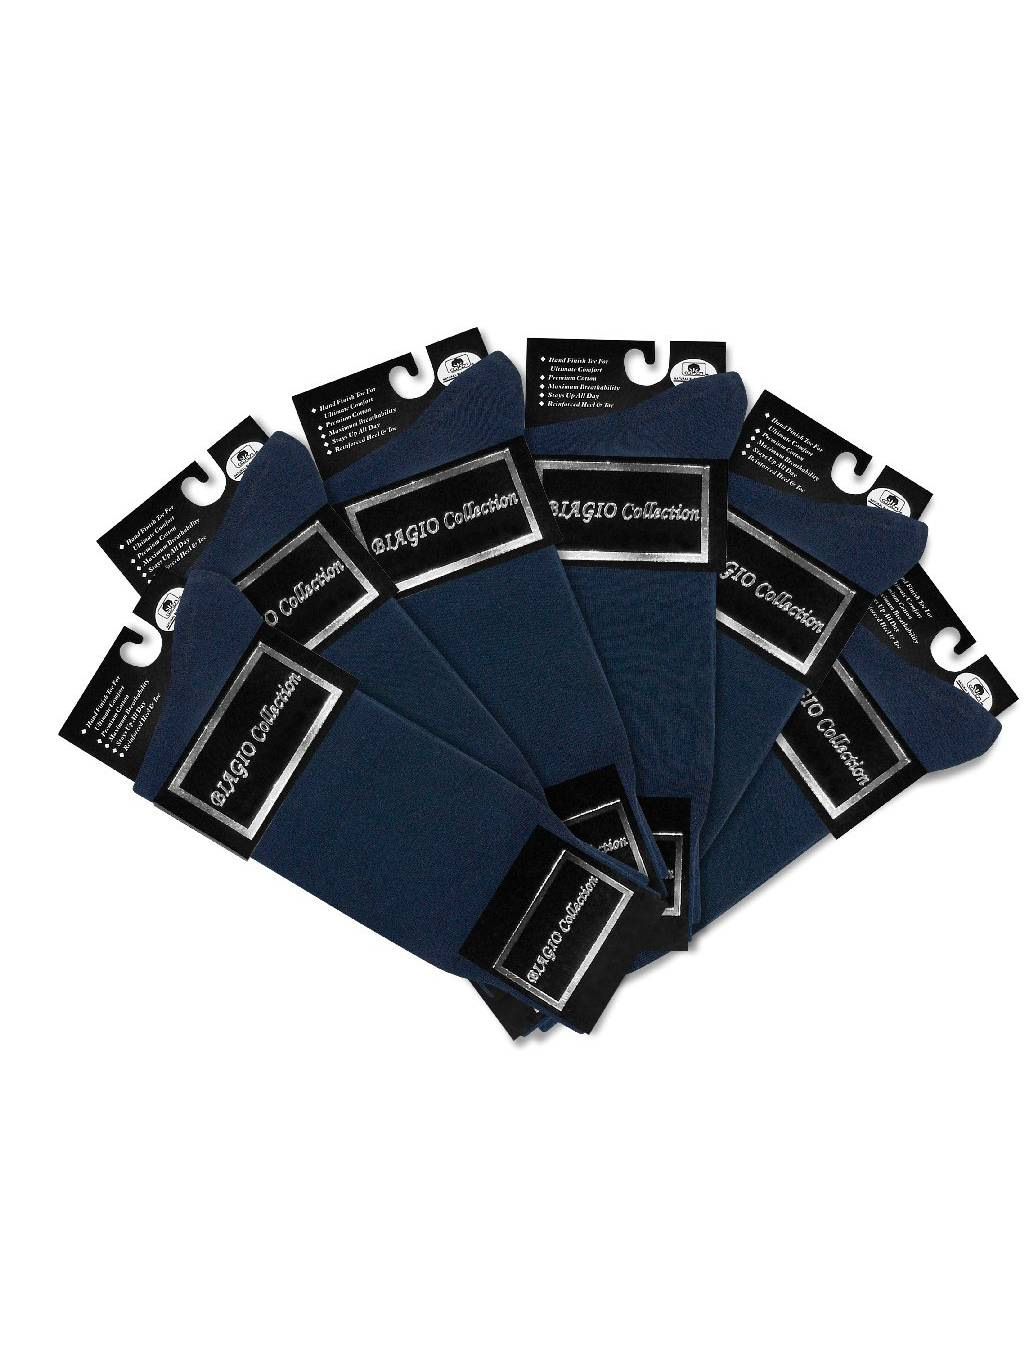 6 Pair of Biagio Solid NAVY BLUE Color Men's COTTON Dress SOCKS